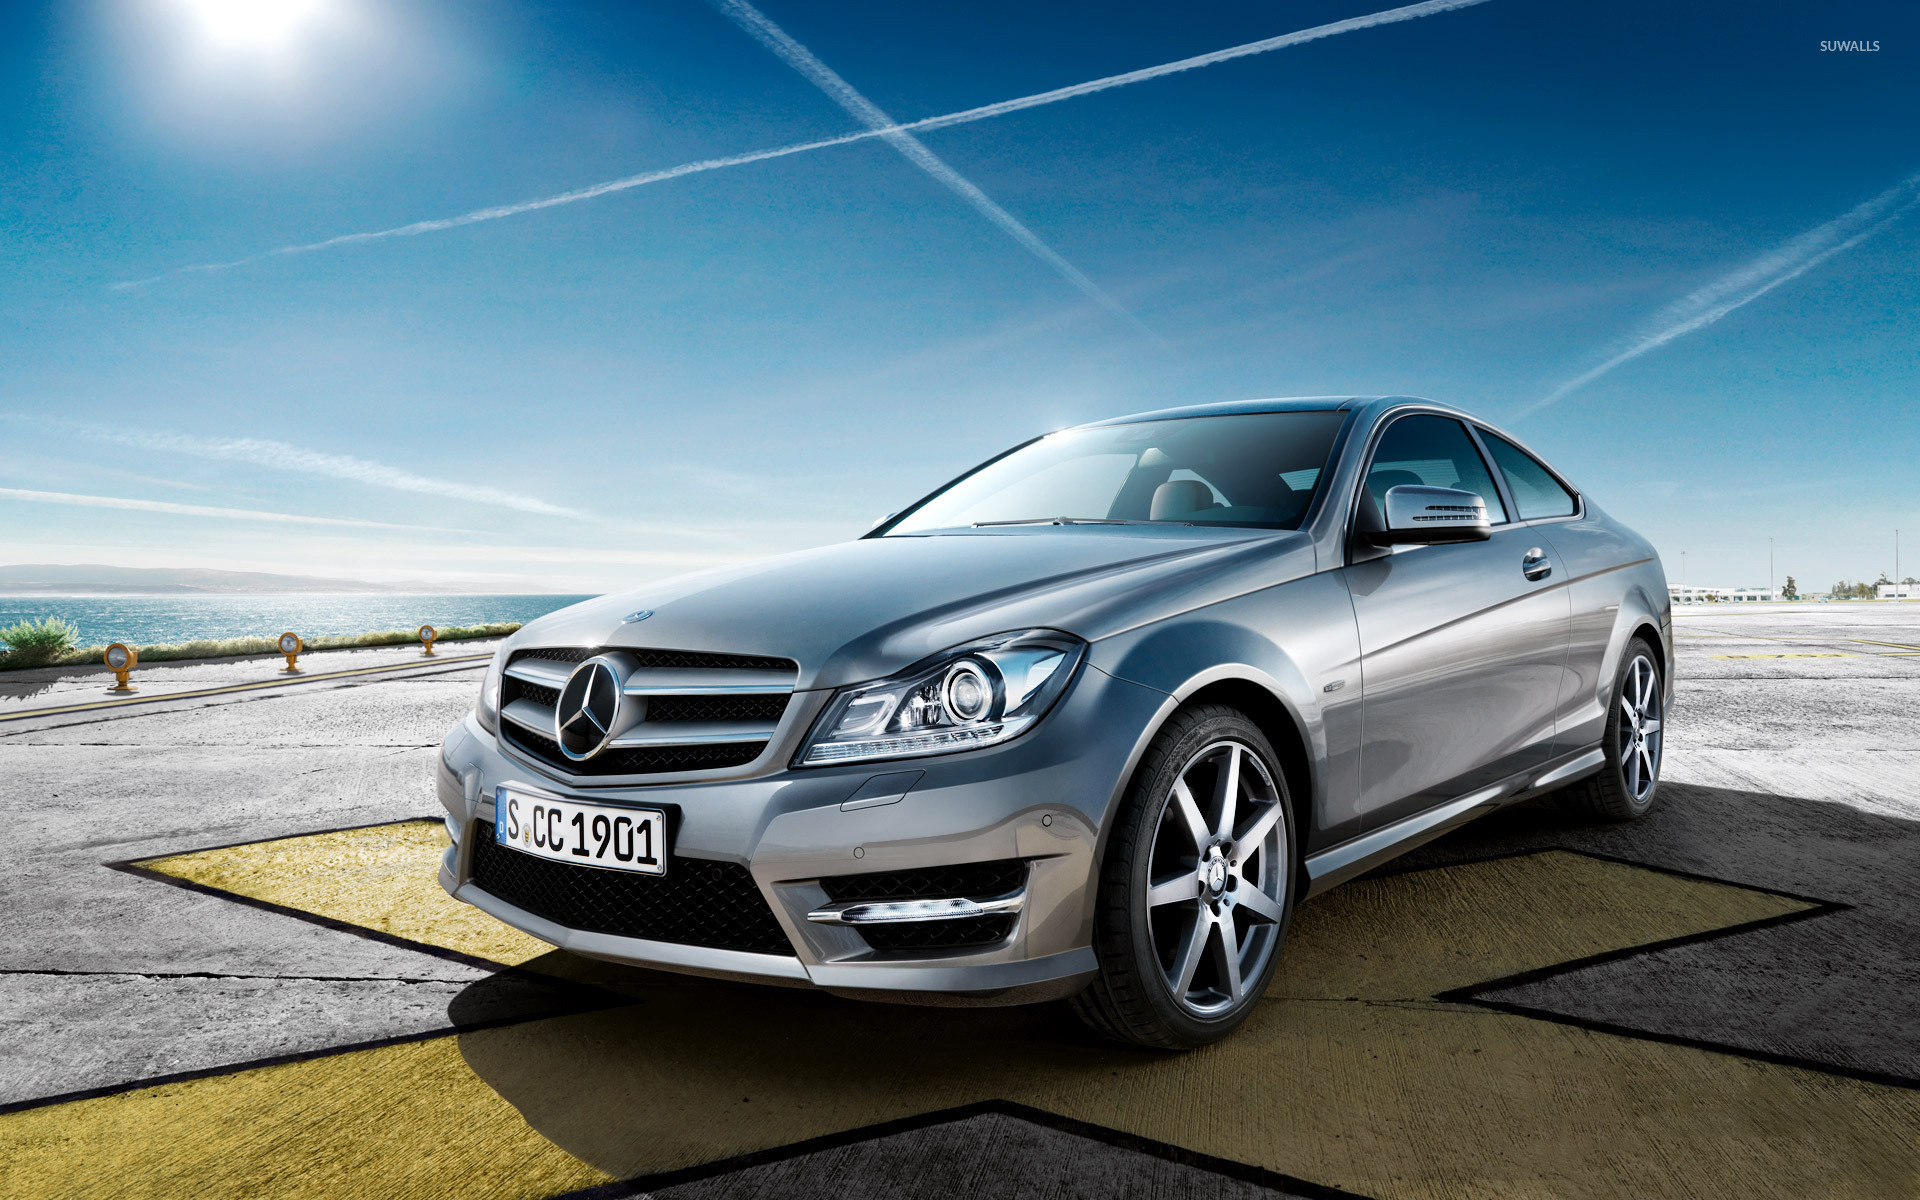 mercedes-benz c-class wallpaper - car wallpapers - #46422